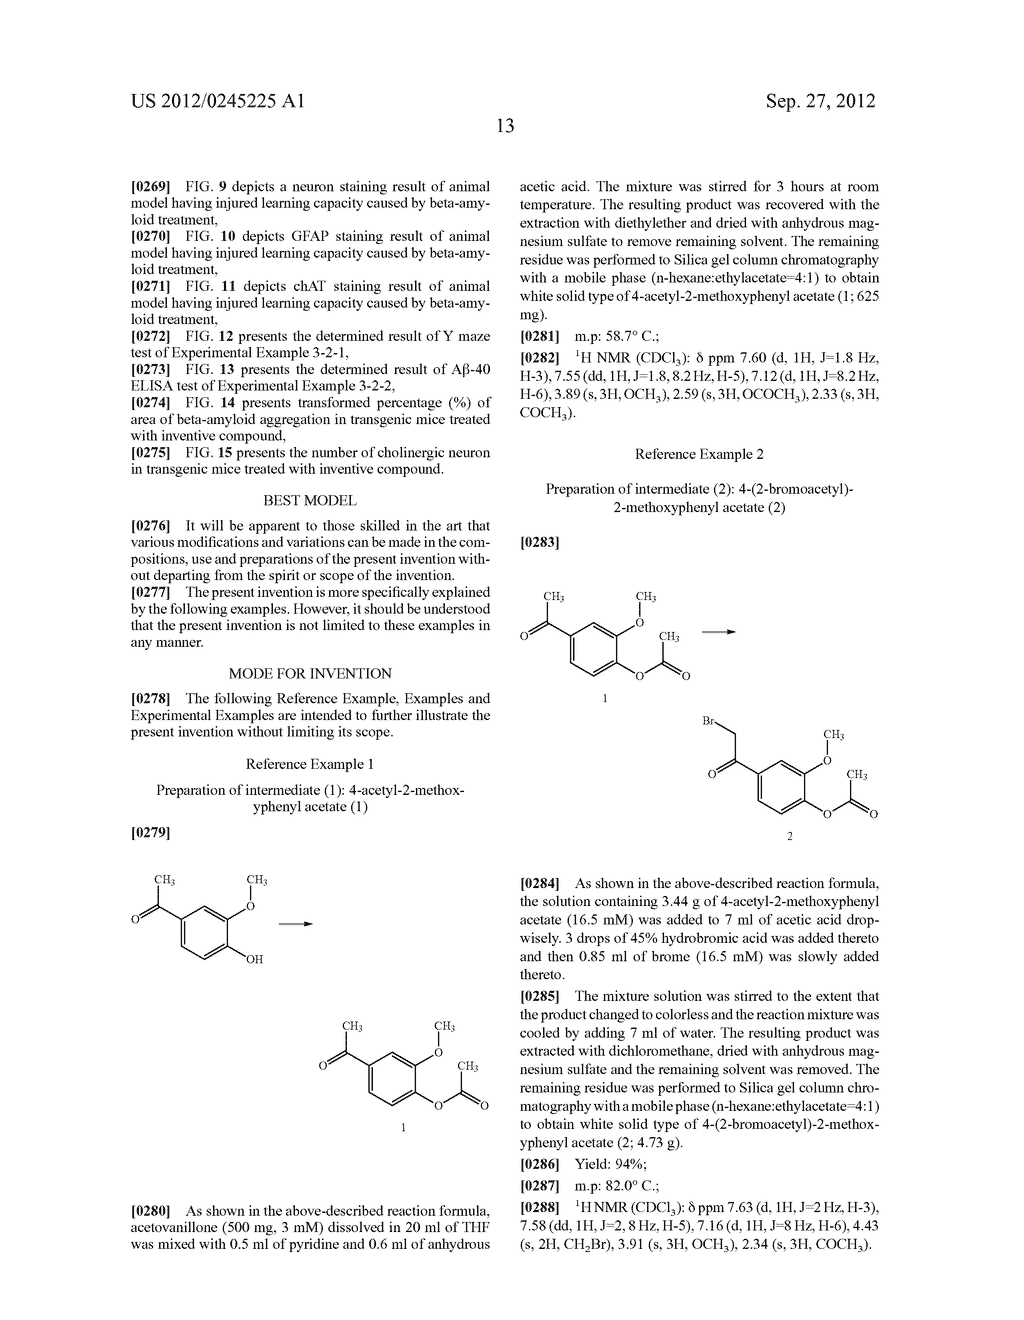 NOVEL BENZOFURAN TYPE DERIVATIVES, A COMPOSITION COMPRISING THE SAME FOR     TREATING OR PREVENTING COGNITIVE DYSFUNCTION AND THE USE THEREOF - diagram, schematic, and image 29